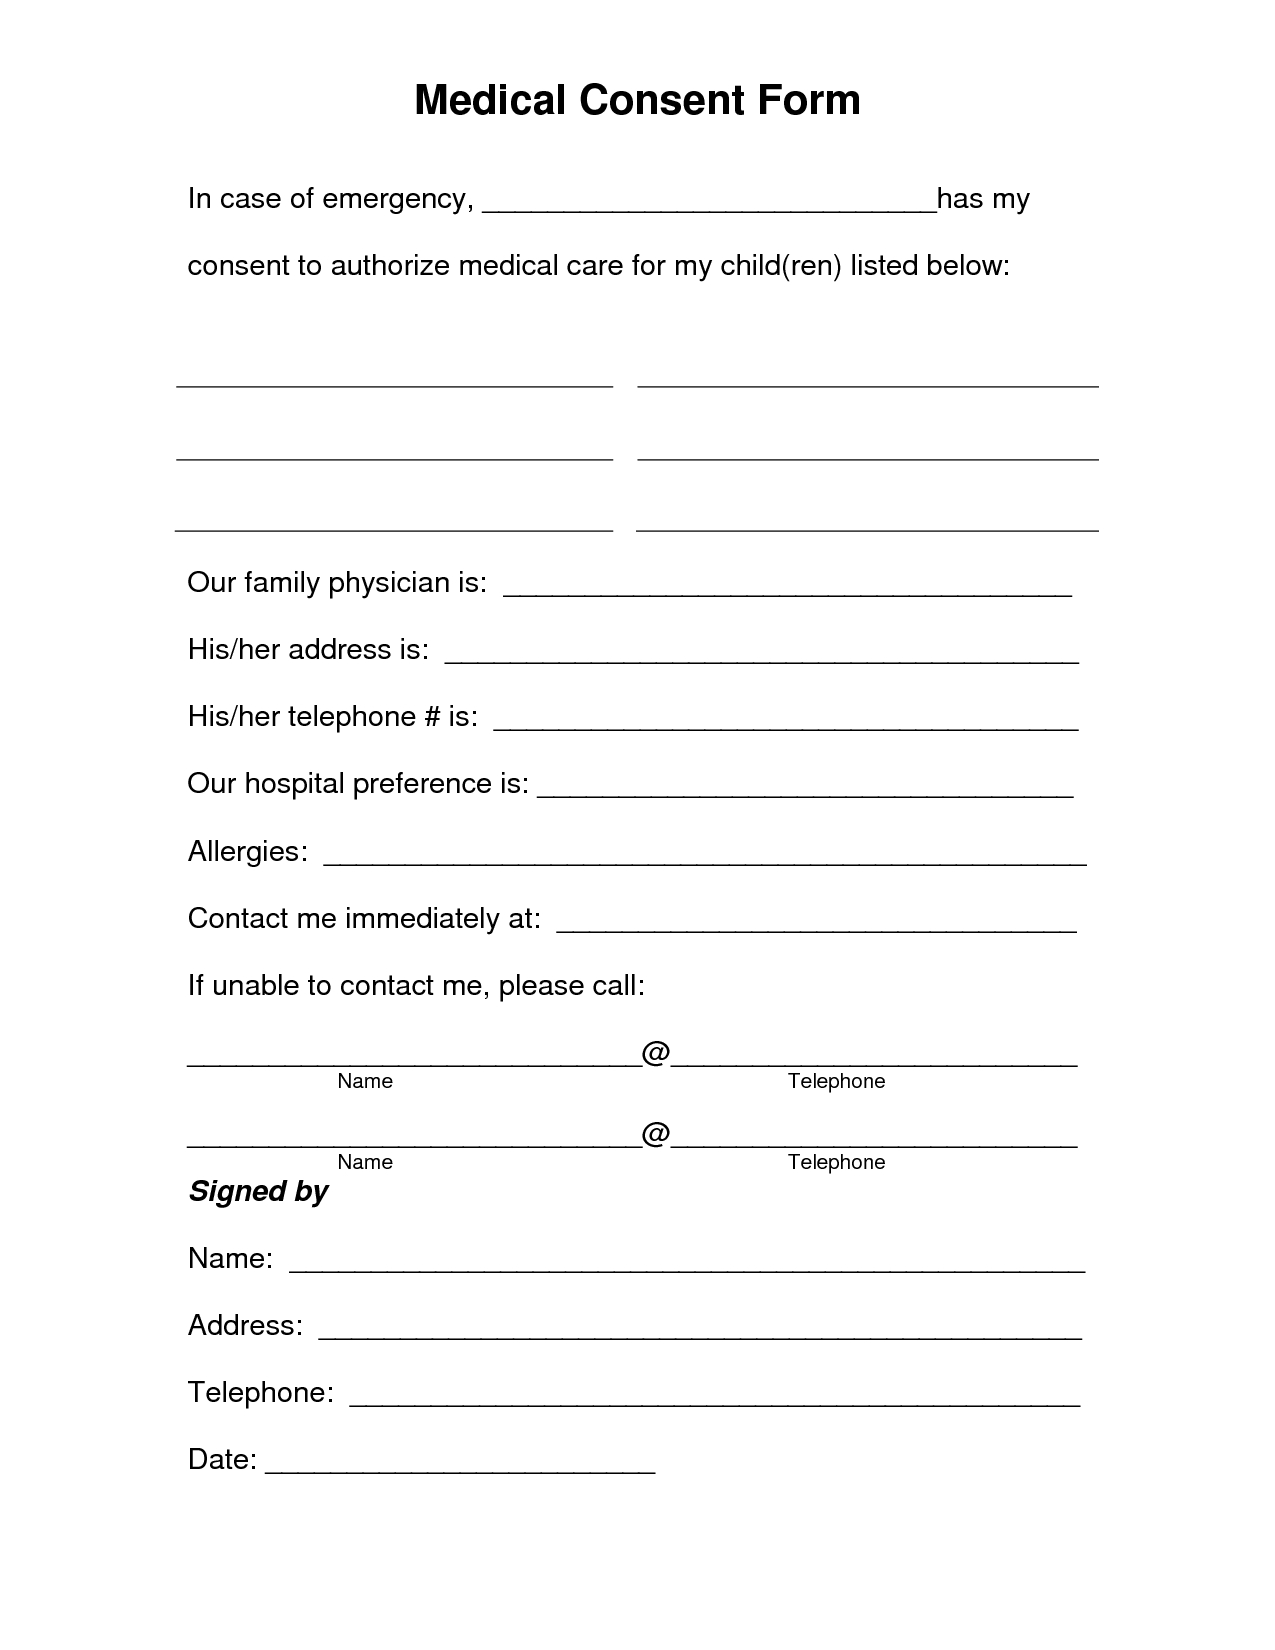 Free Printable Medical Consent Form | Free Medical Consent Form - Free Printable Medical Consent Form